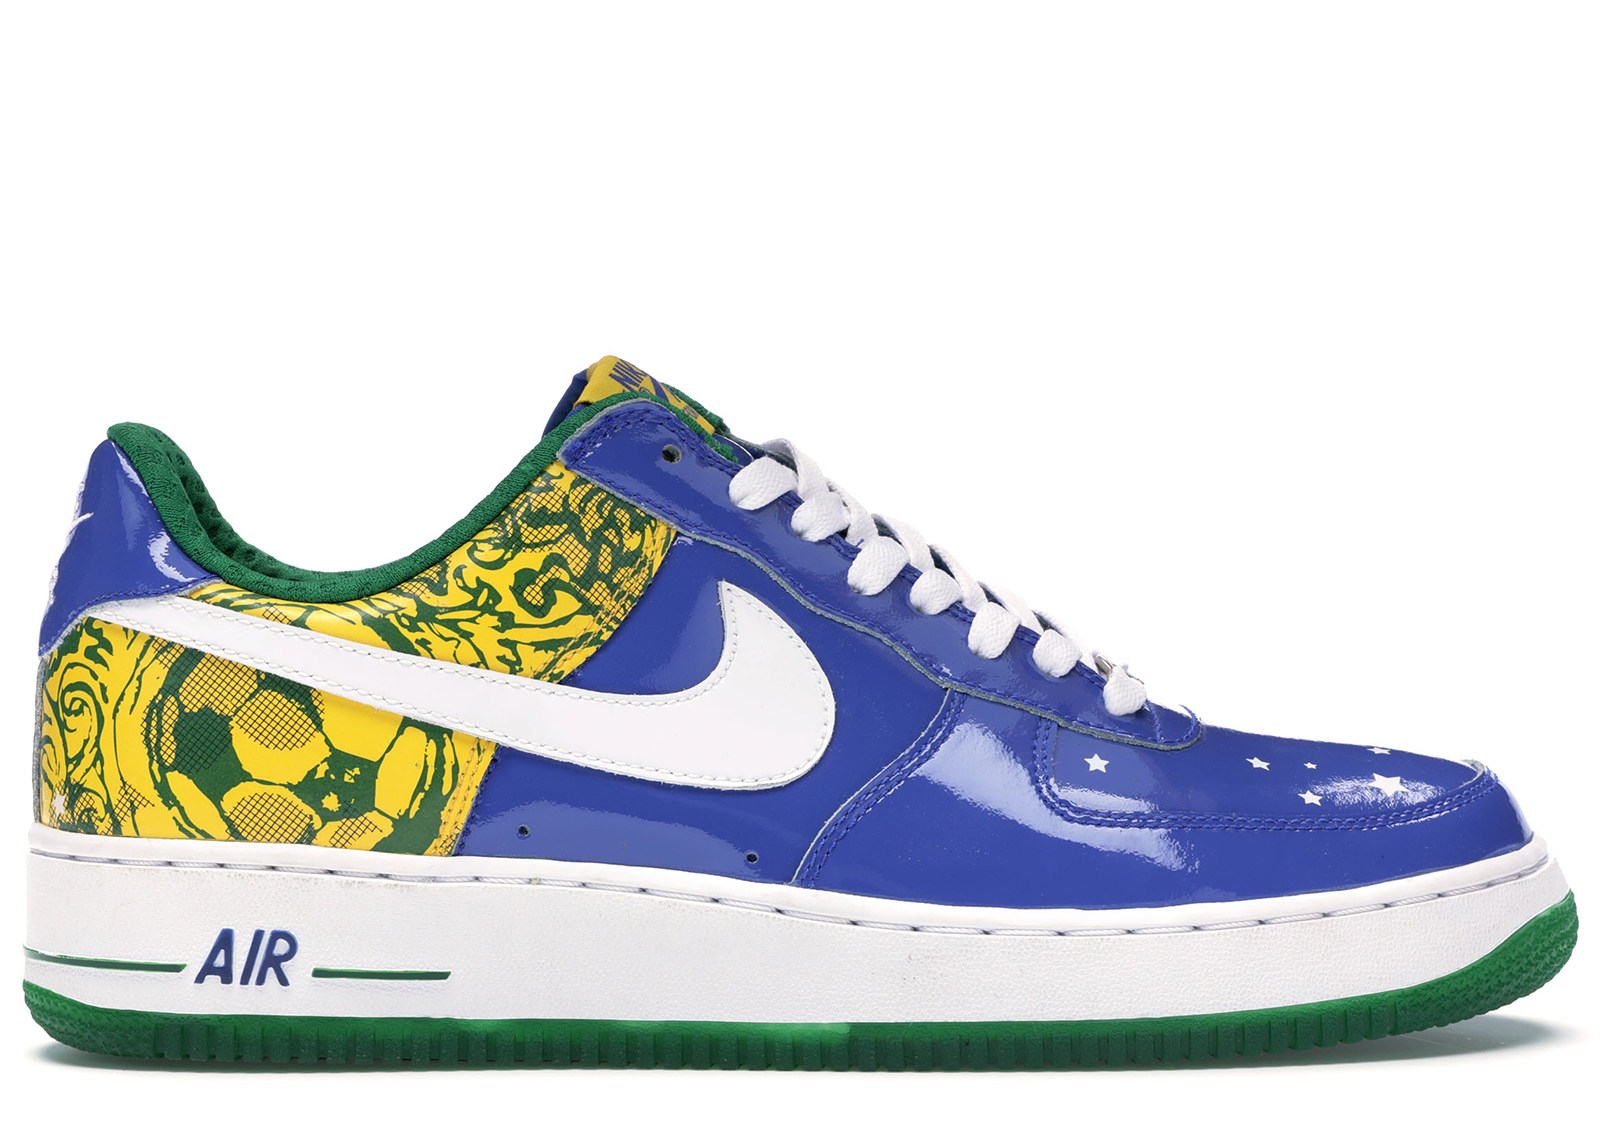 Nike Air Force 1 Low dorato